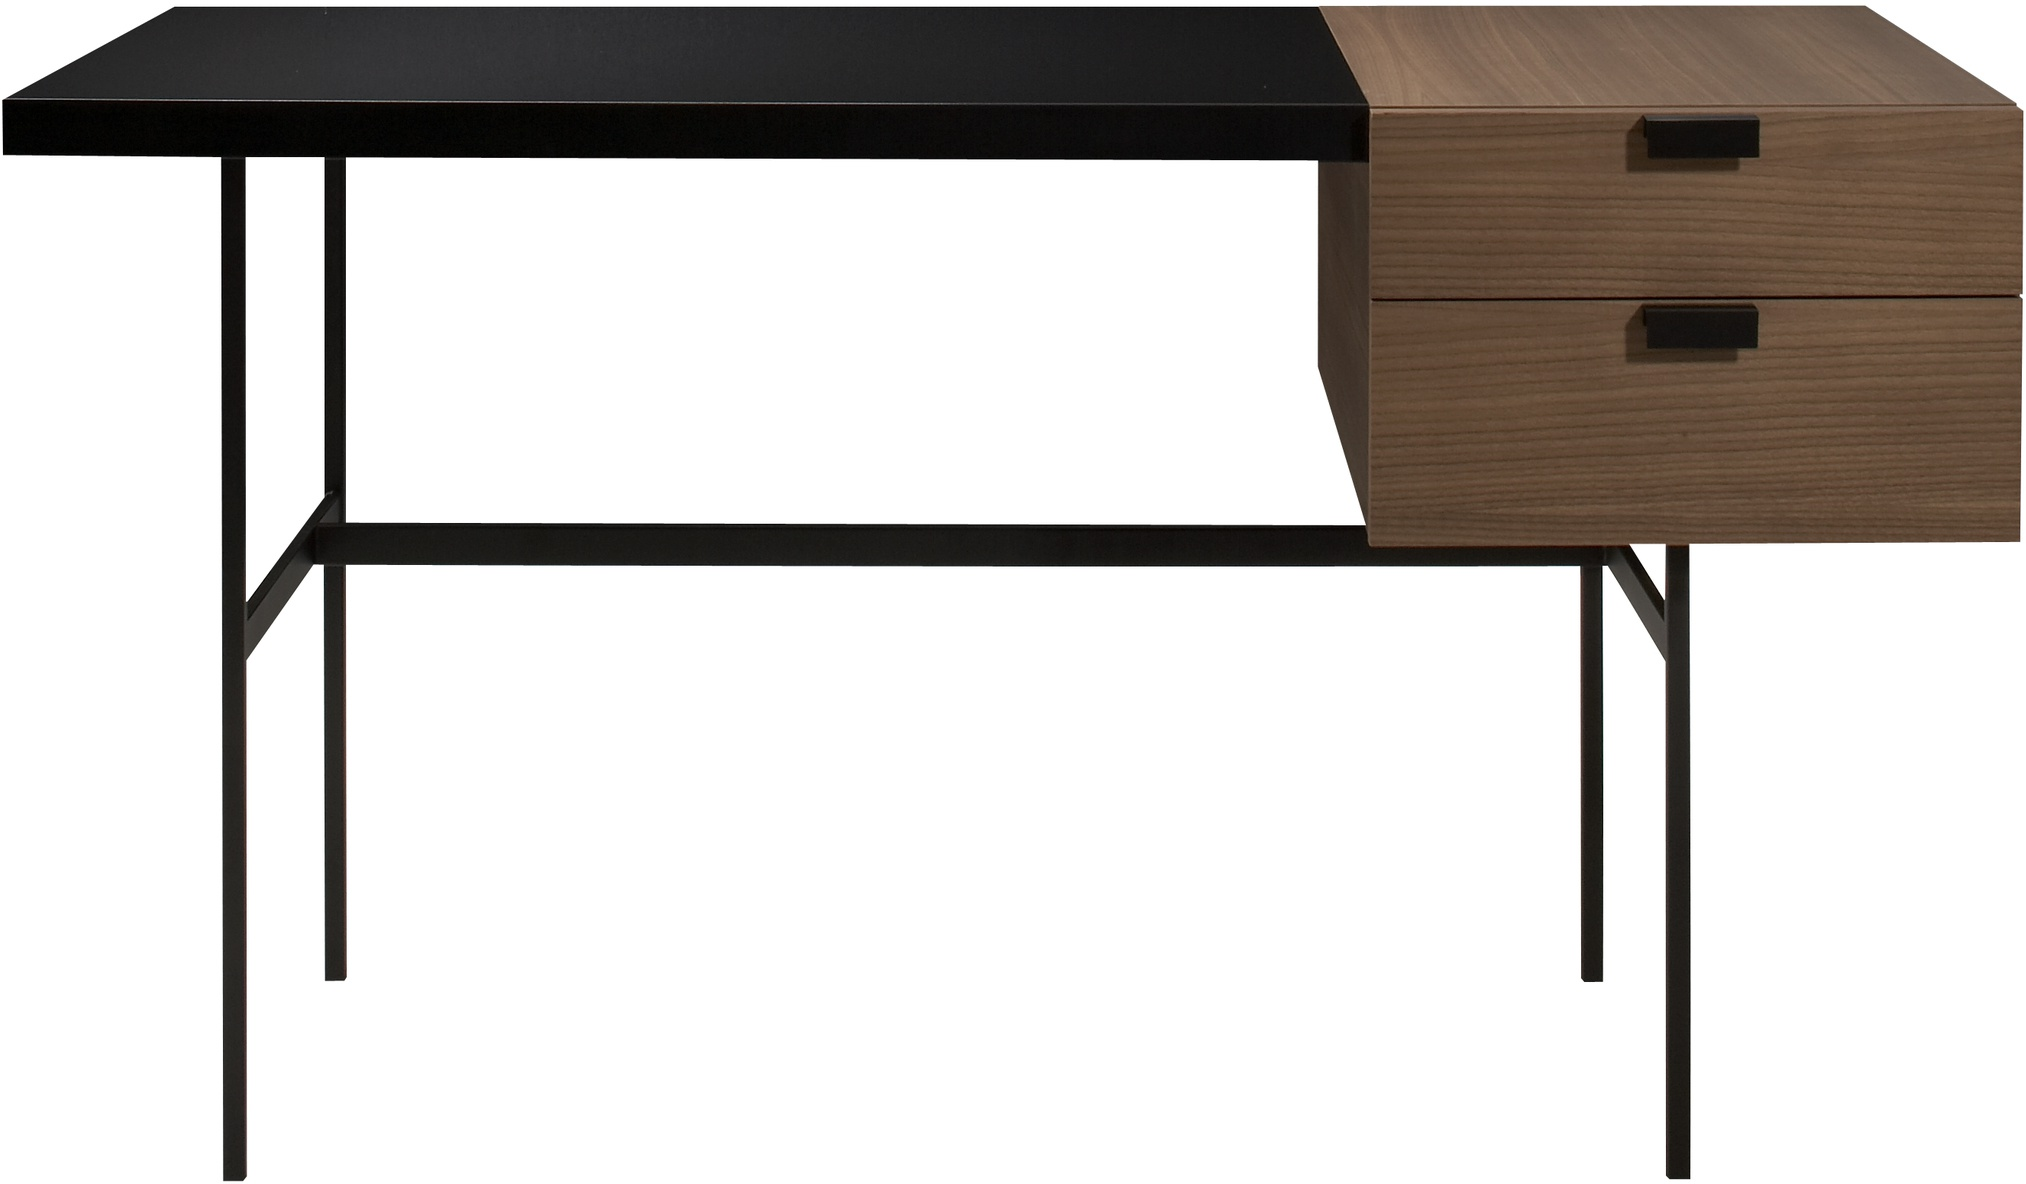 tanis desks secretary from designer pierre paulin. Black Bedroom Furniture Sets. Home Design Ideas